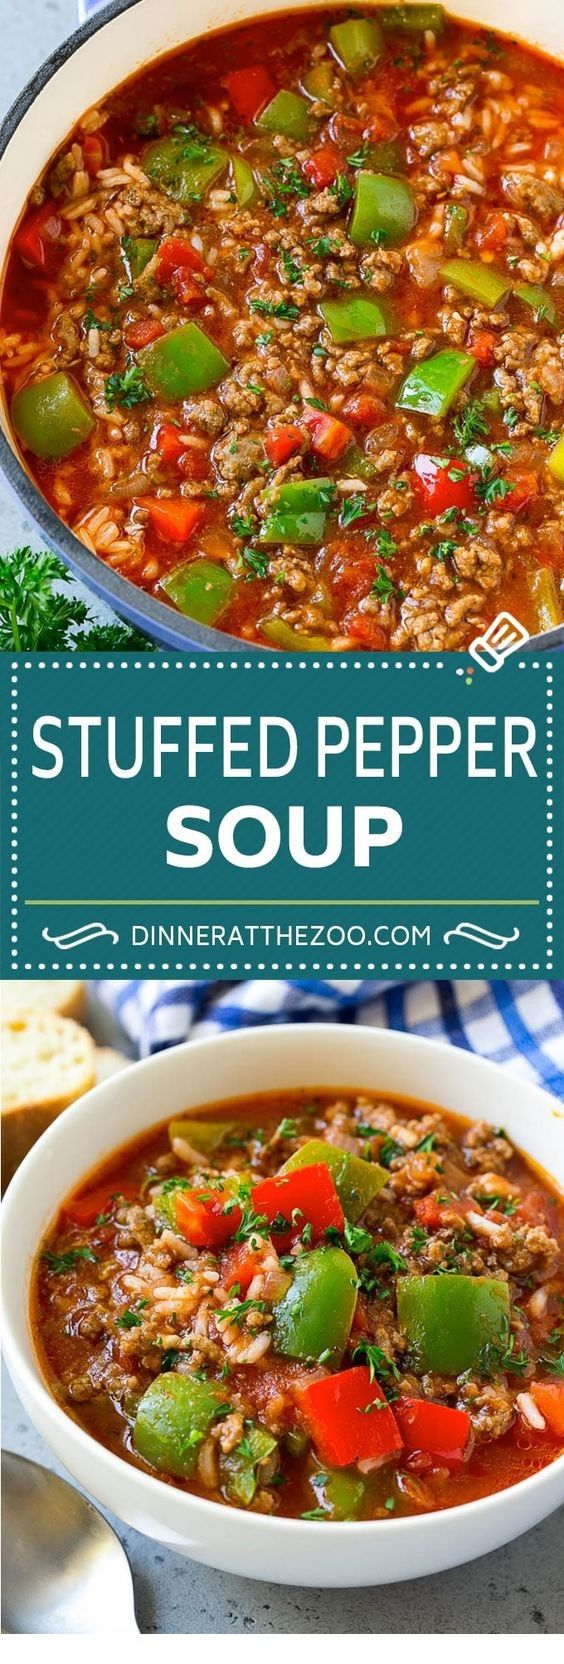 Stuffed Pepper Soup Recipe Easy Soup Recipes Healthy Soup Recipes Stuffed Peppers